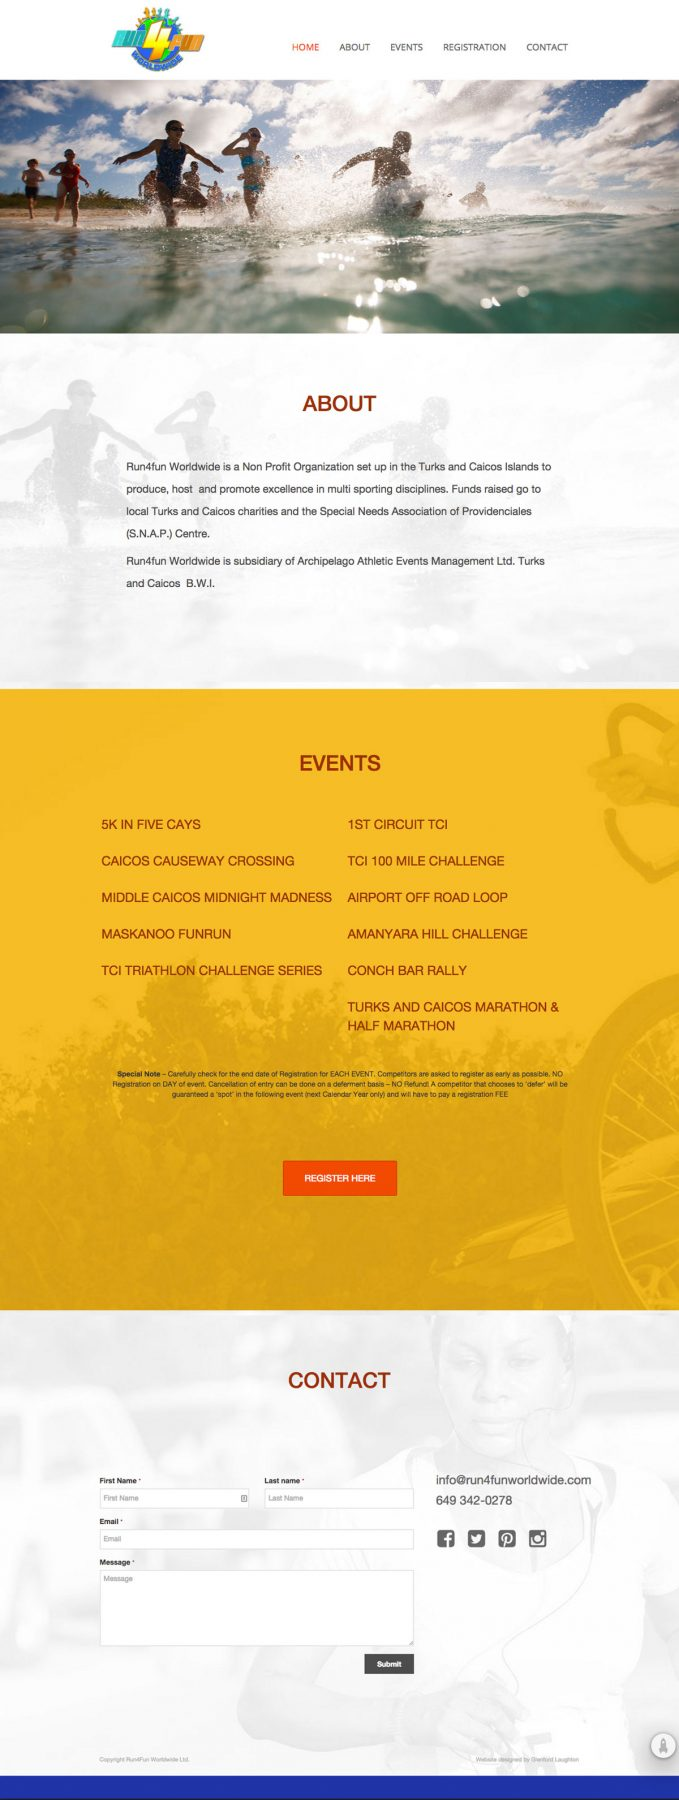 Run4Fun Worldwide: Onepage website